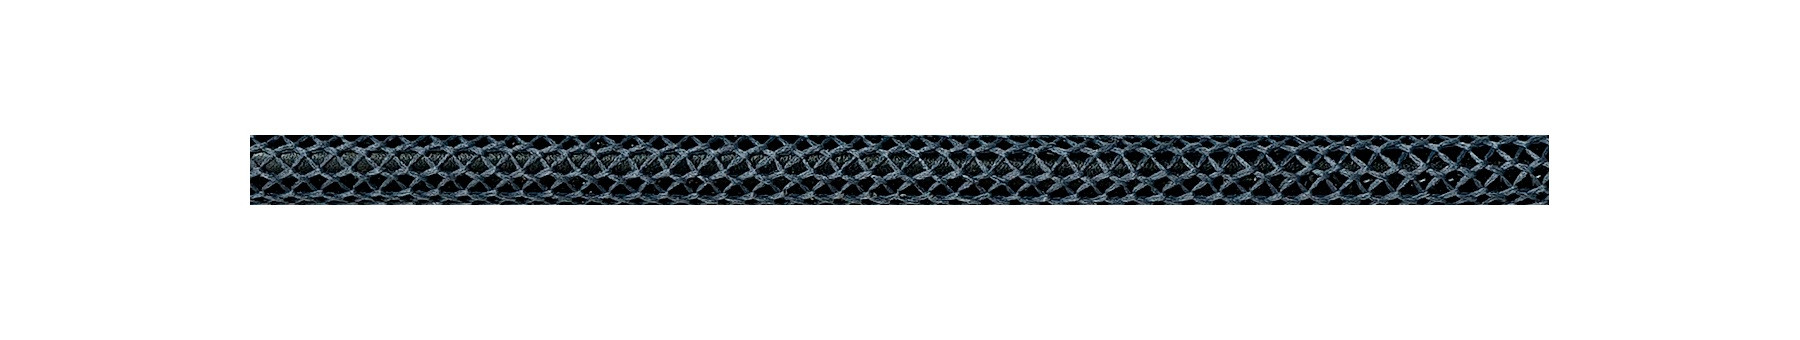 Textile Cable Dark Grey Netlike Textile Covering